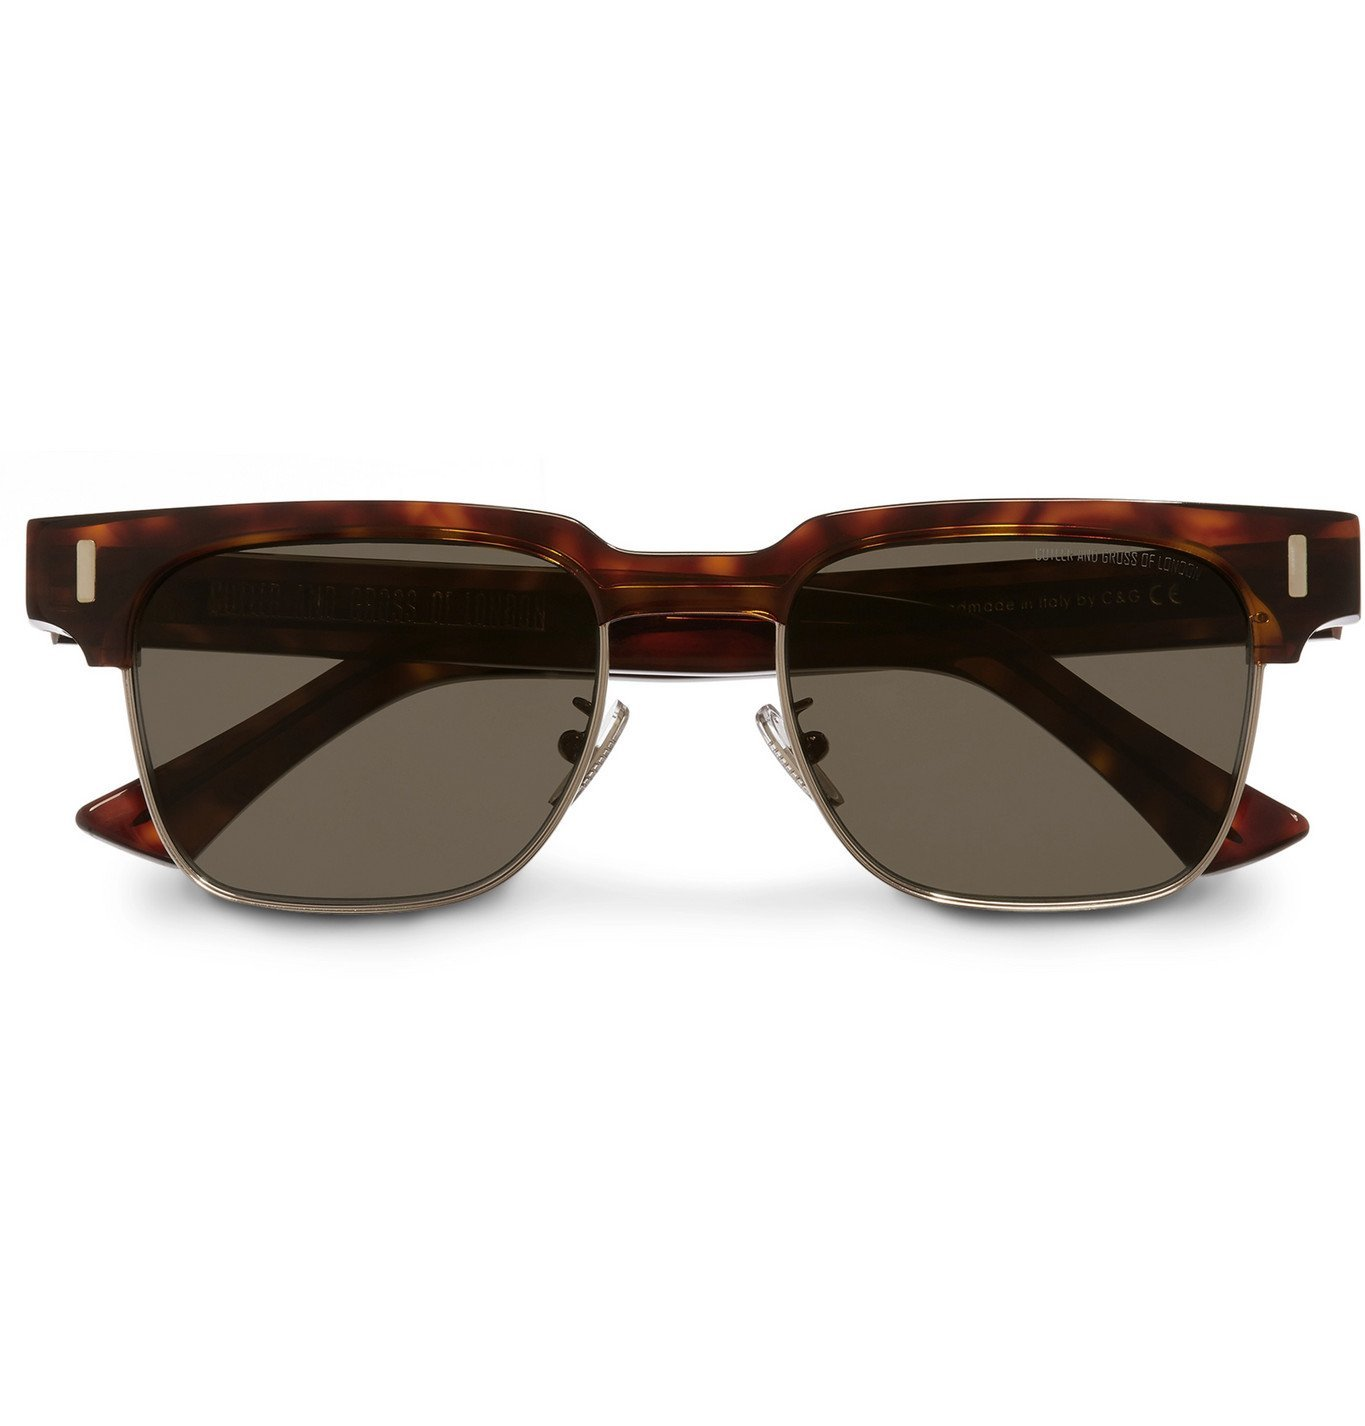 Photo: Cutler and Gross - Square-Frame Acetate and Gold-Tone Sunglasses - Tortoiseshell